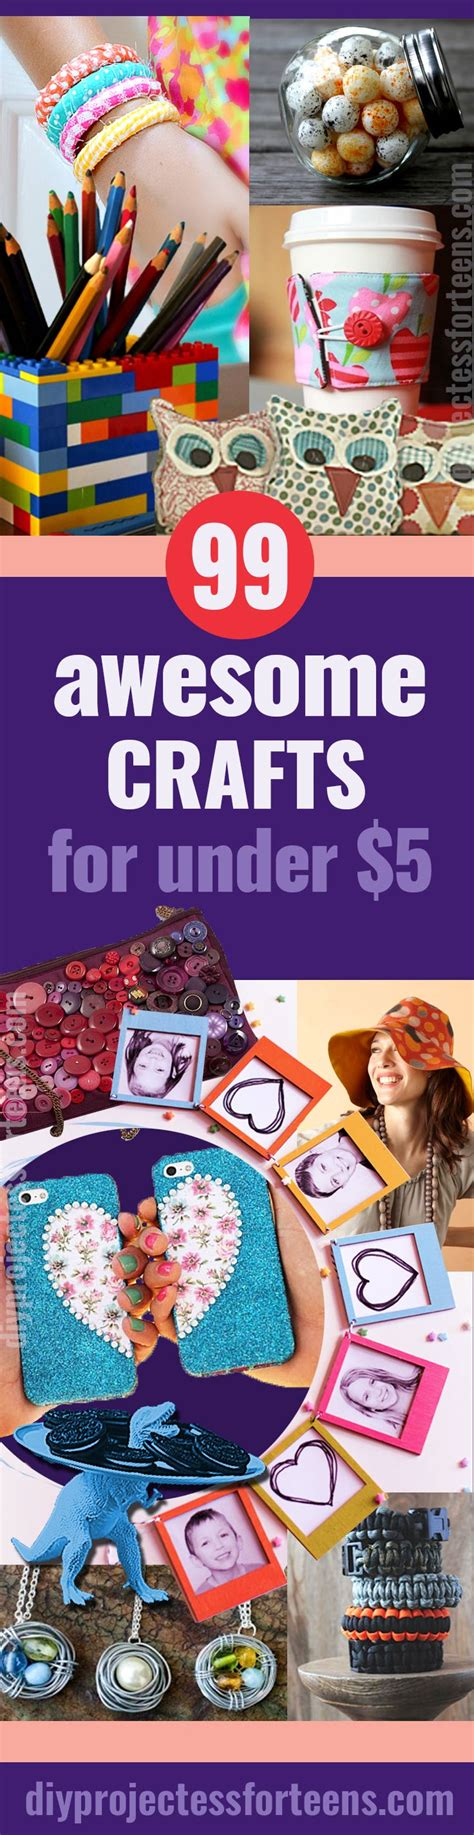 christmas craft ideas for teens 99 awesome crafts you can make for less than 5 diy projects for